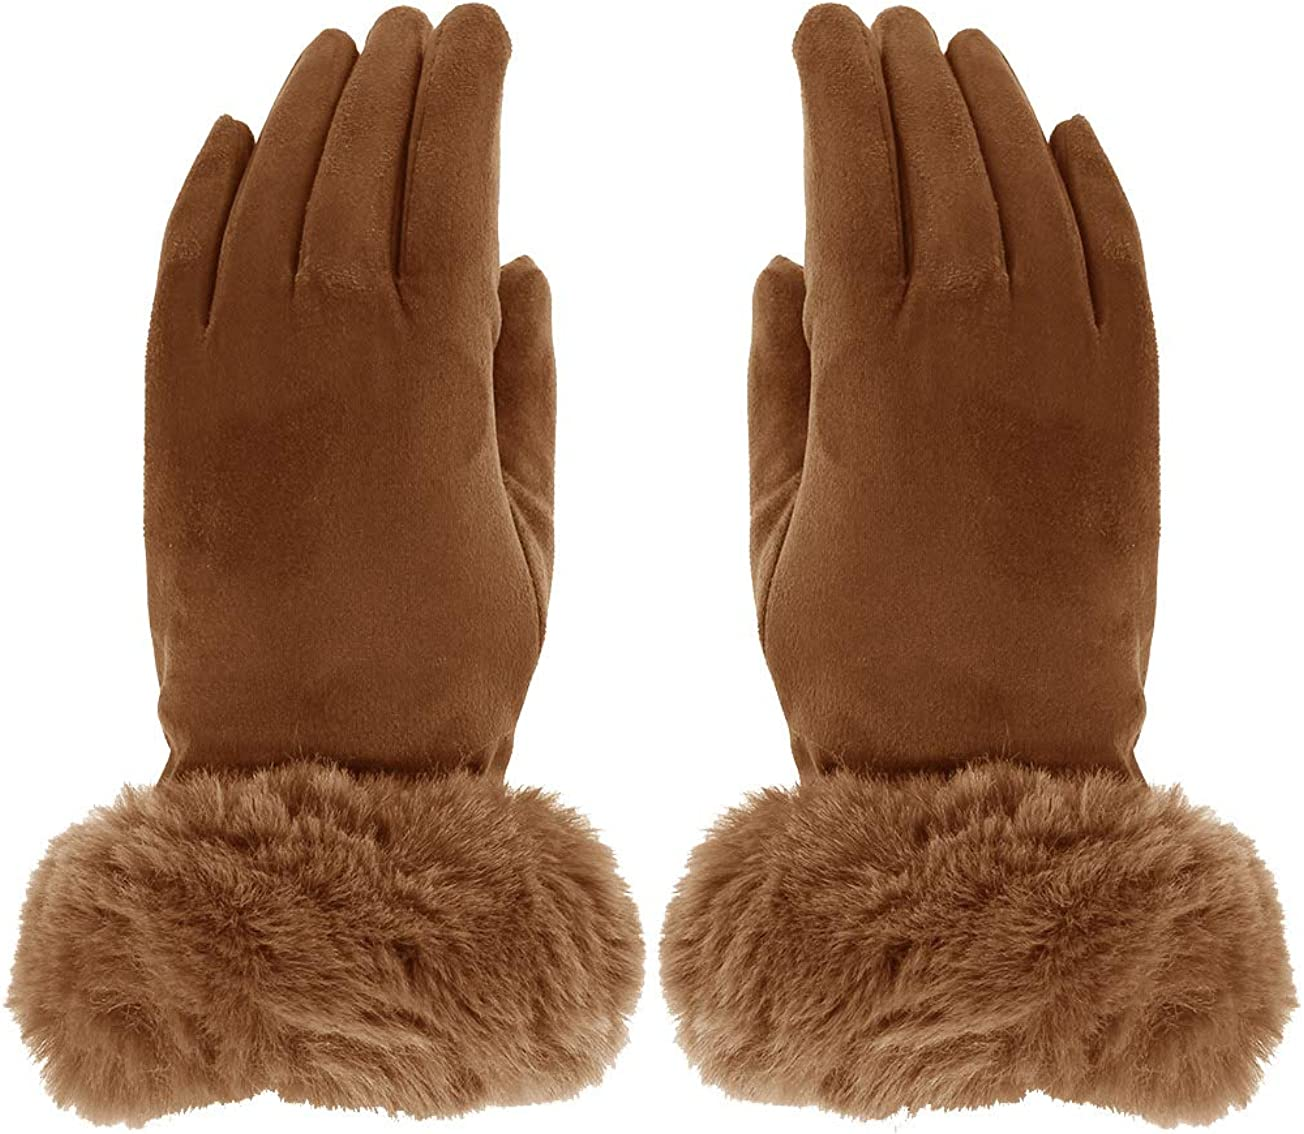 Ladies Womens Lagenlook Plain Faux Fur Cuff Suede Effect Touch Screen Winter Gloves One Size